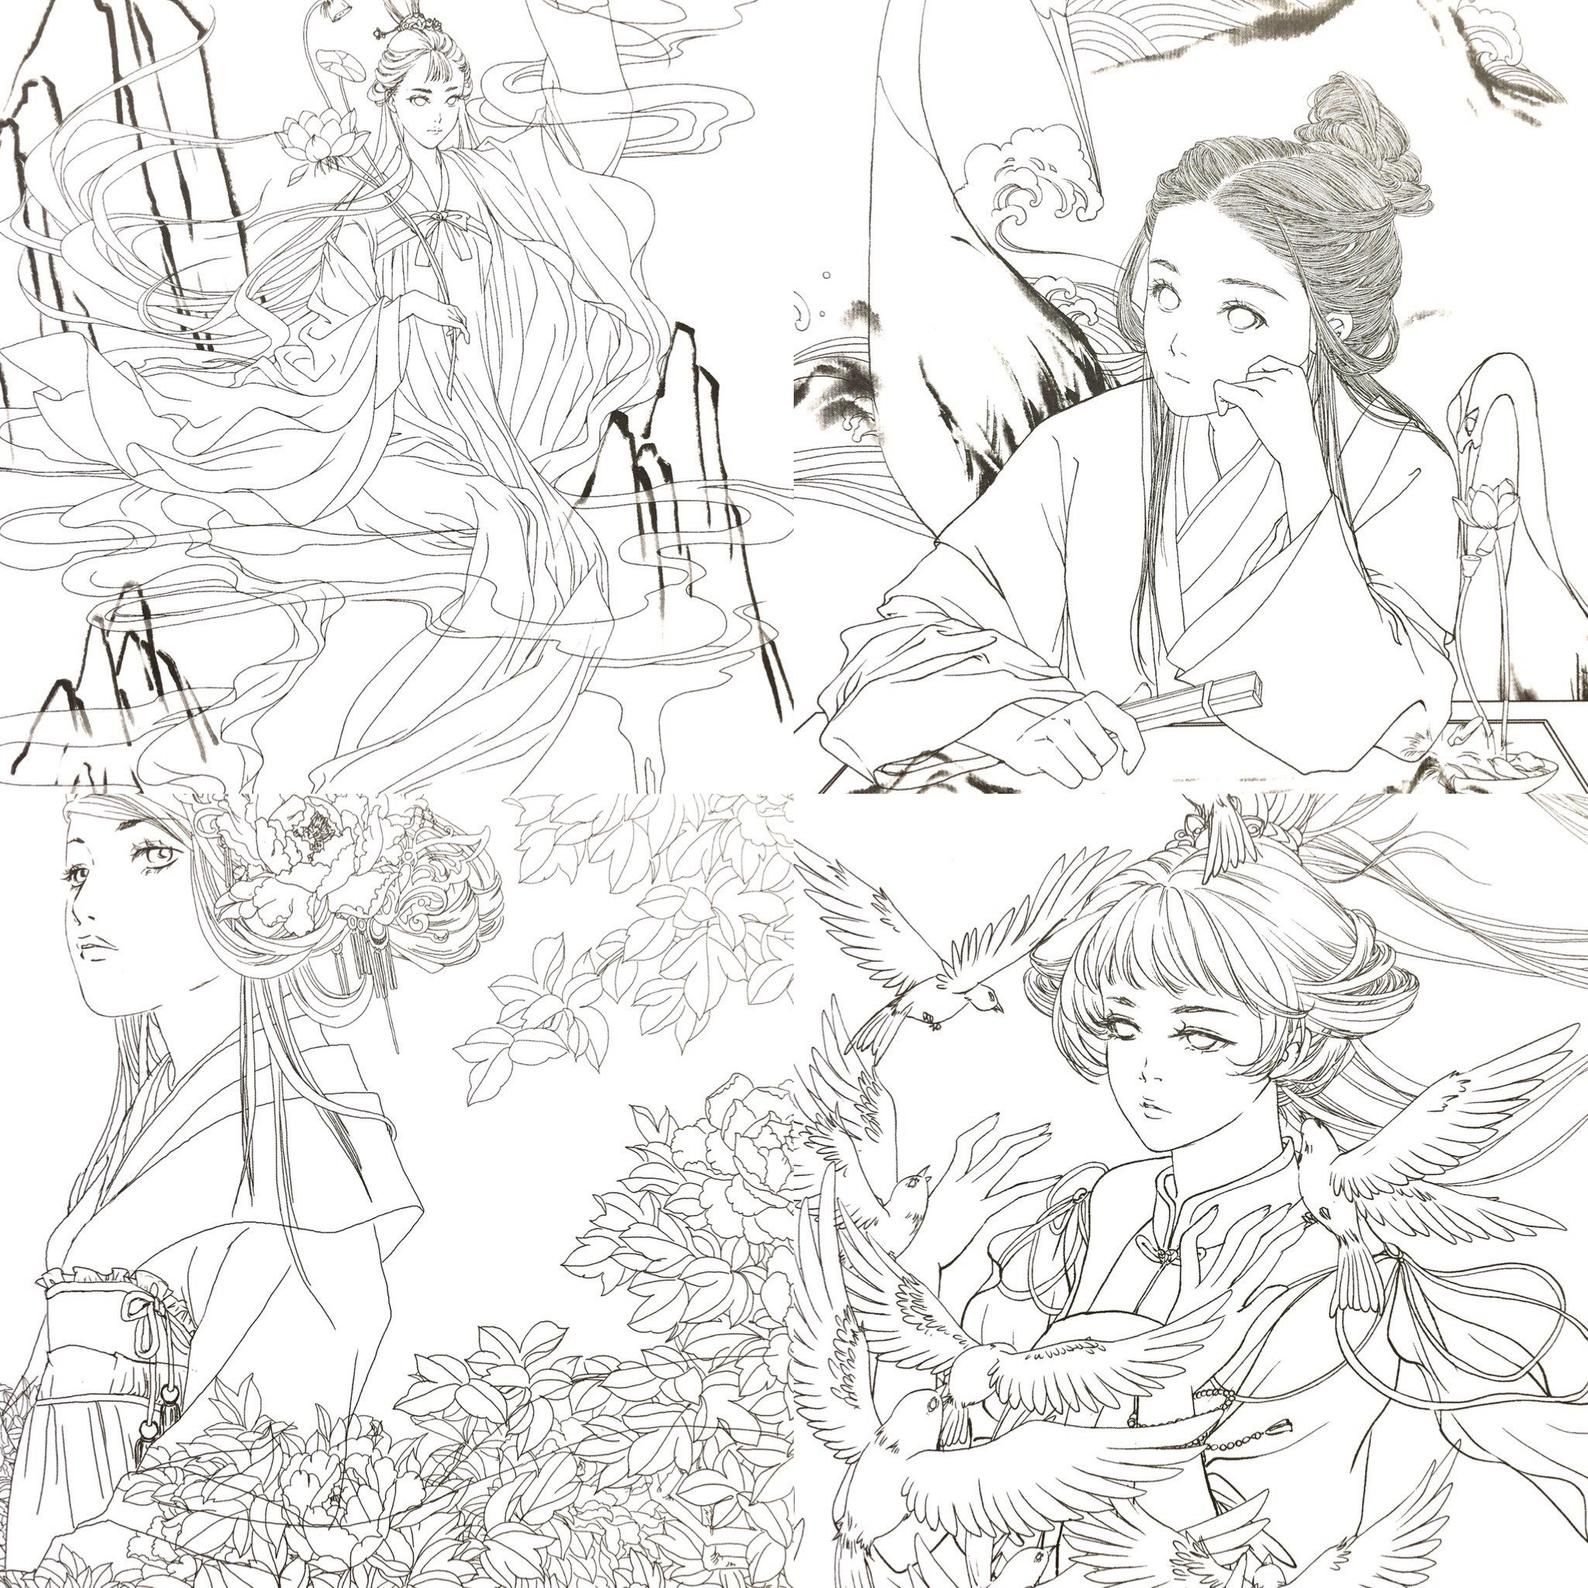 Hers Chinese Antiquity Coloring Book Etsy Coloring Books Fairy Coloring Pages Antique Books